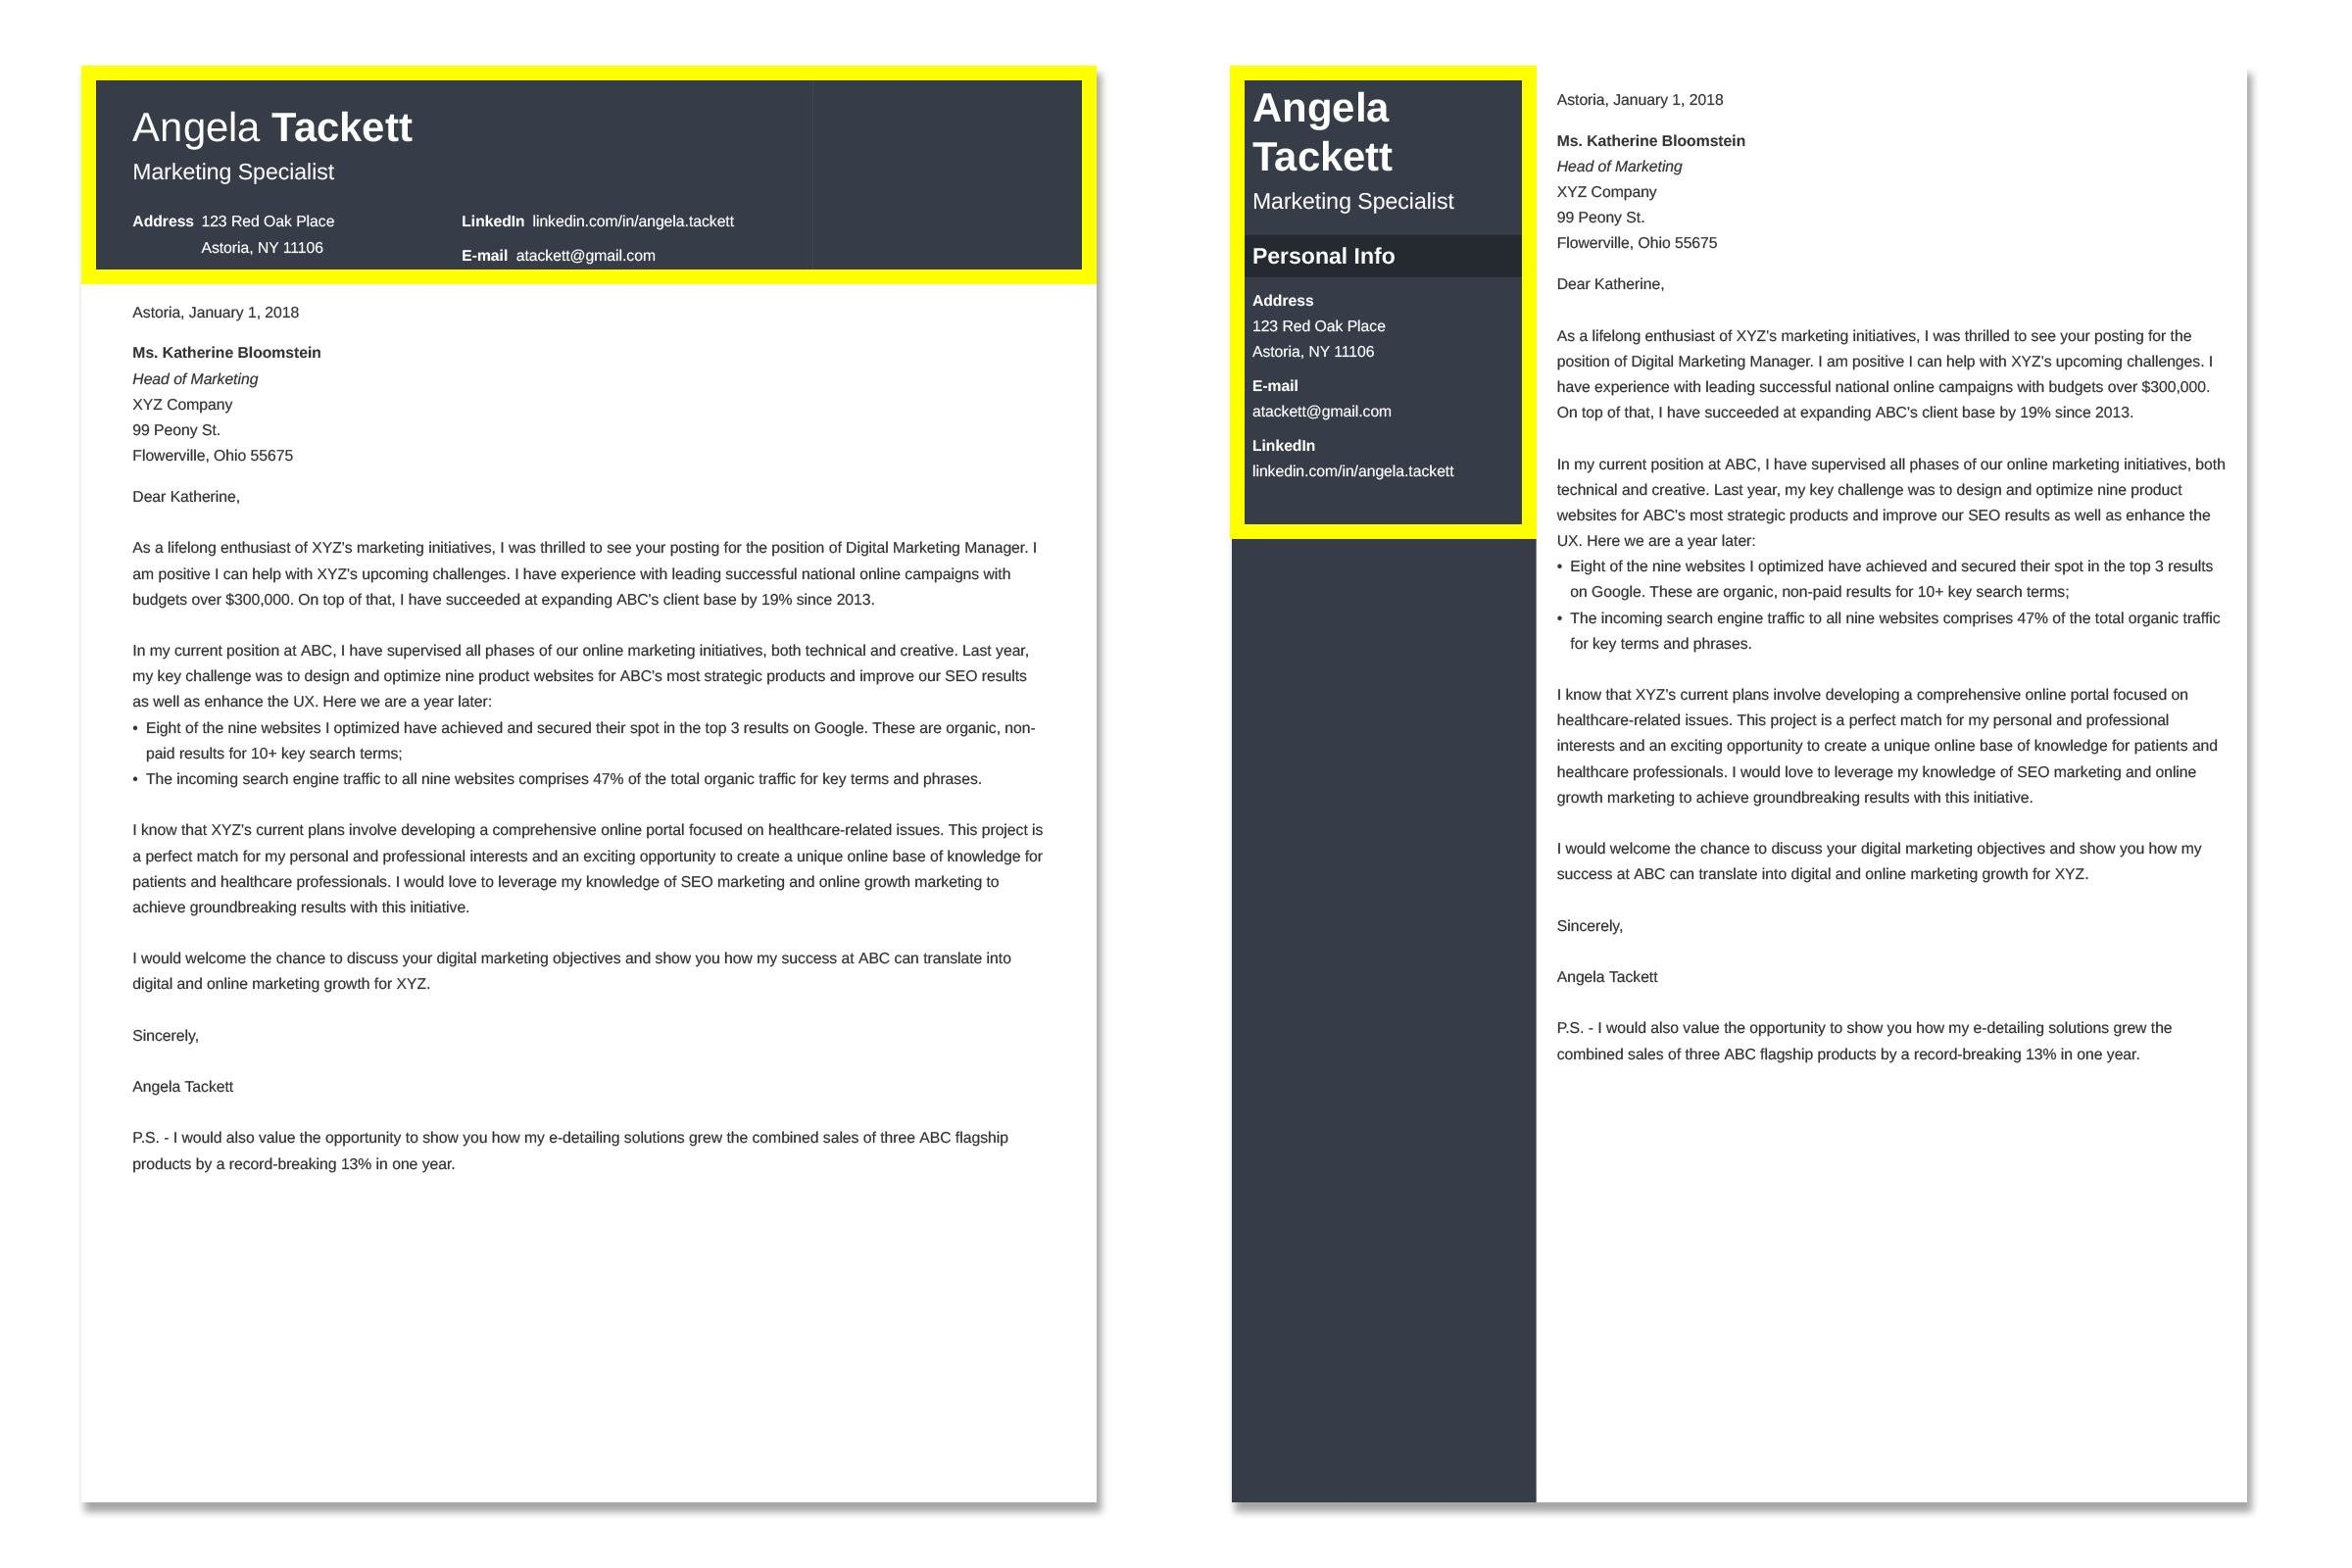 Writing A Cover Letter But Don't Know Recipient from cdn-images.zety.com